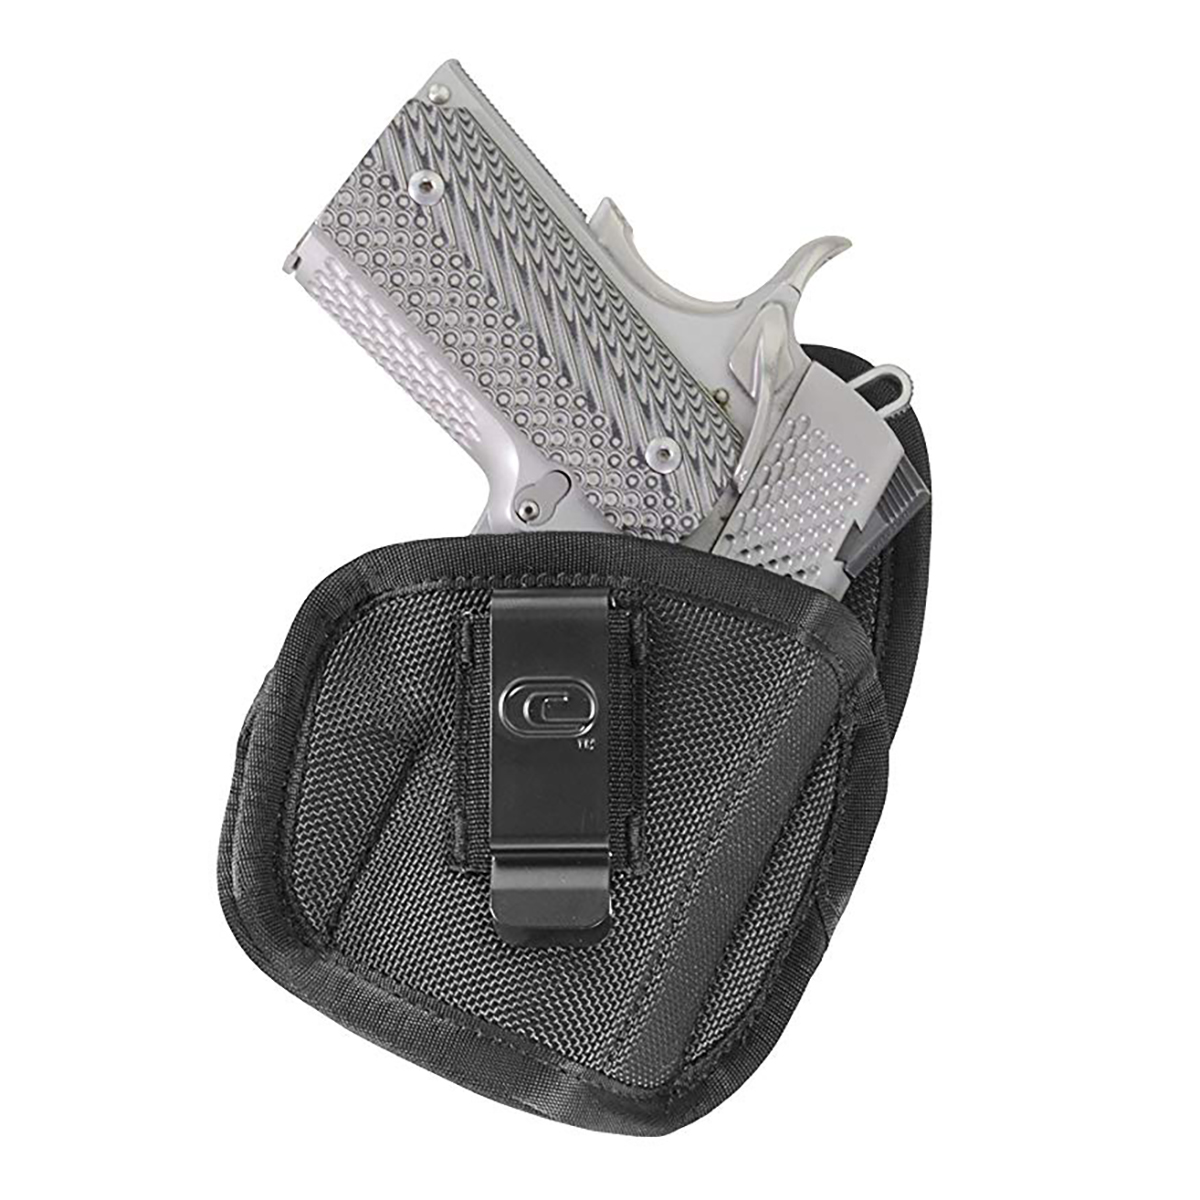 Crossfire Elite Tempest Semi-Auto Compact Conceal Holster, Right